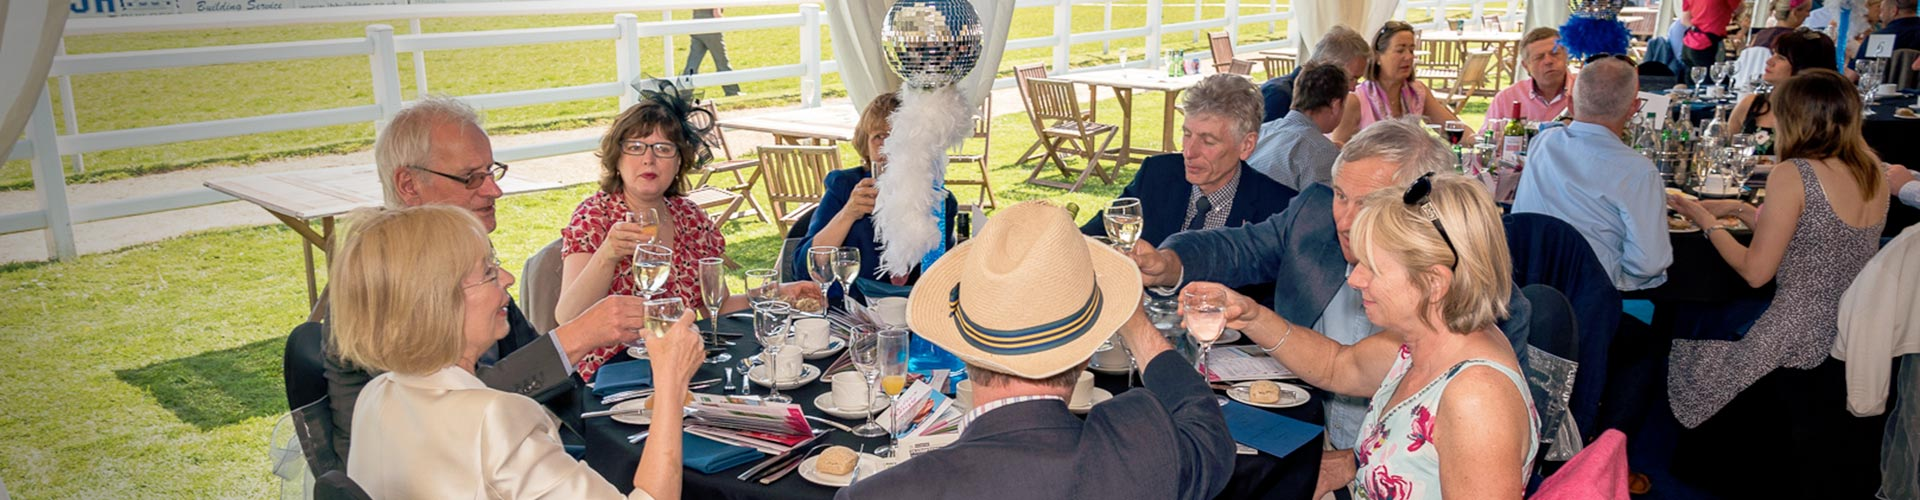 Paddock and Marquee restaurants at Plumpton Racecourse